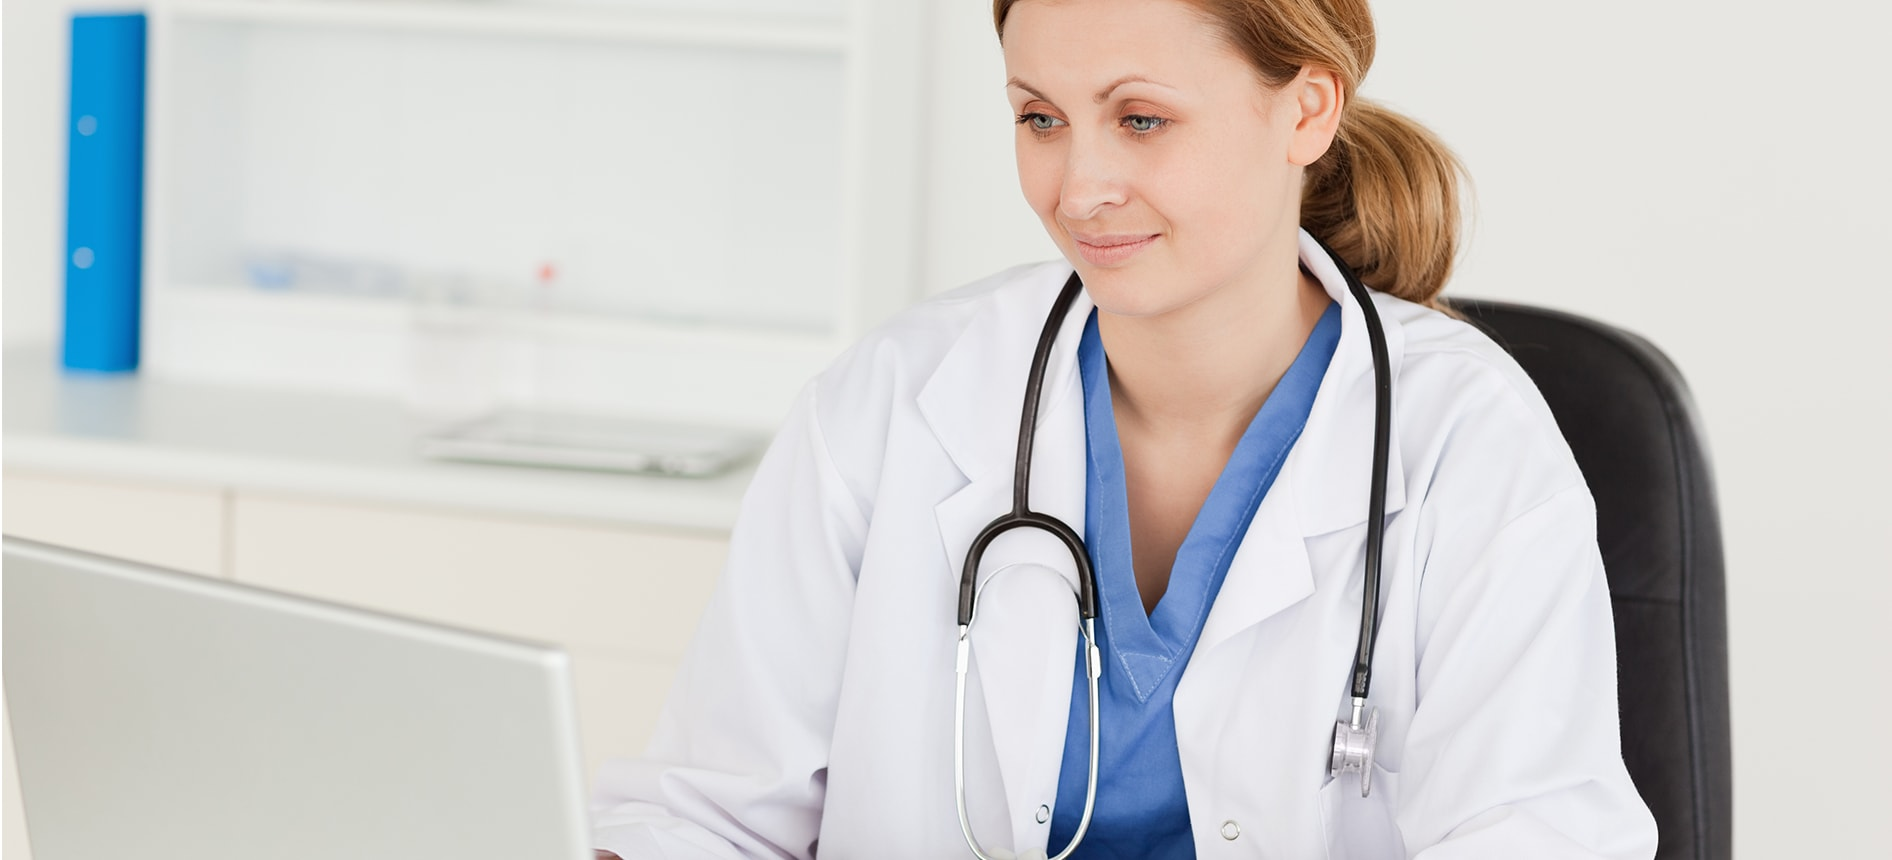 Hiring a Medical Office Assistant image